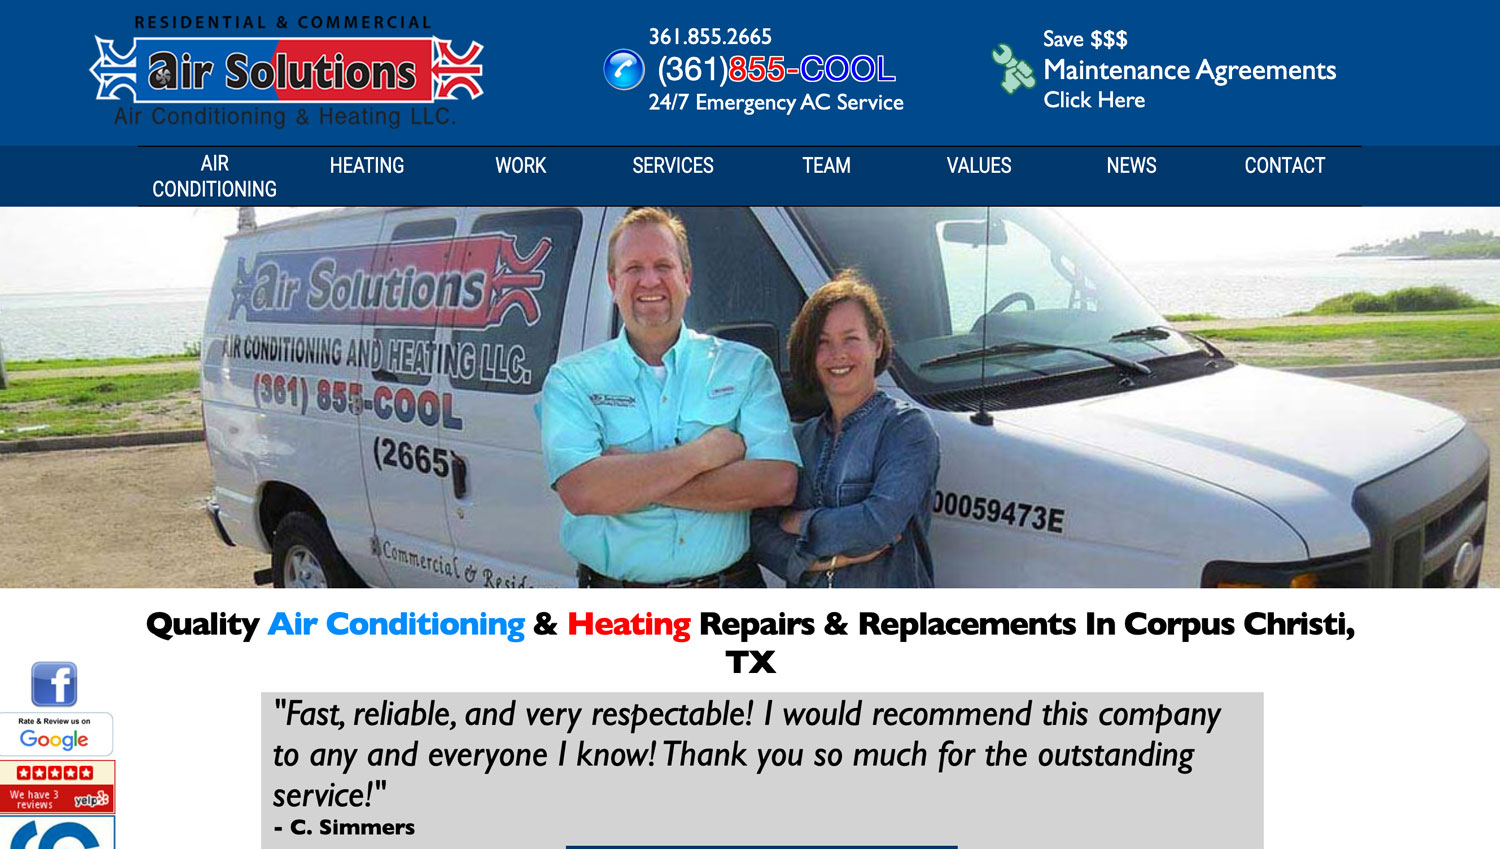 Air Solutions Old outdated website